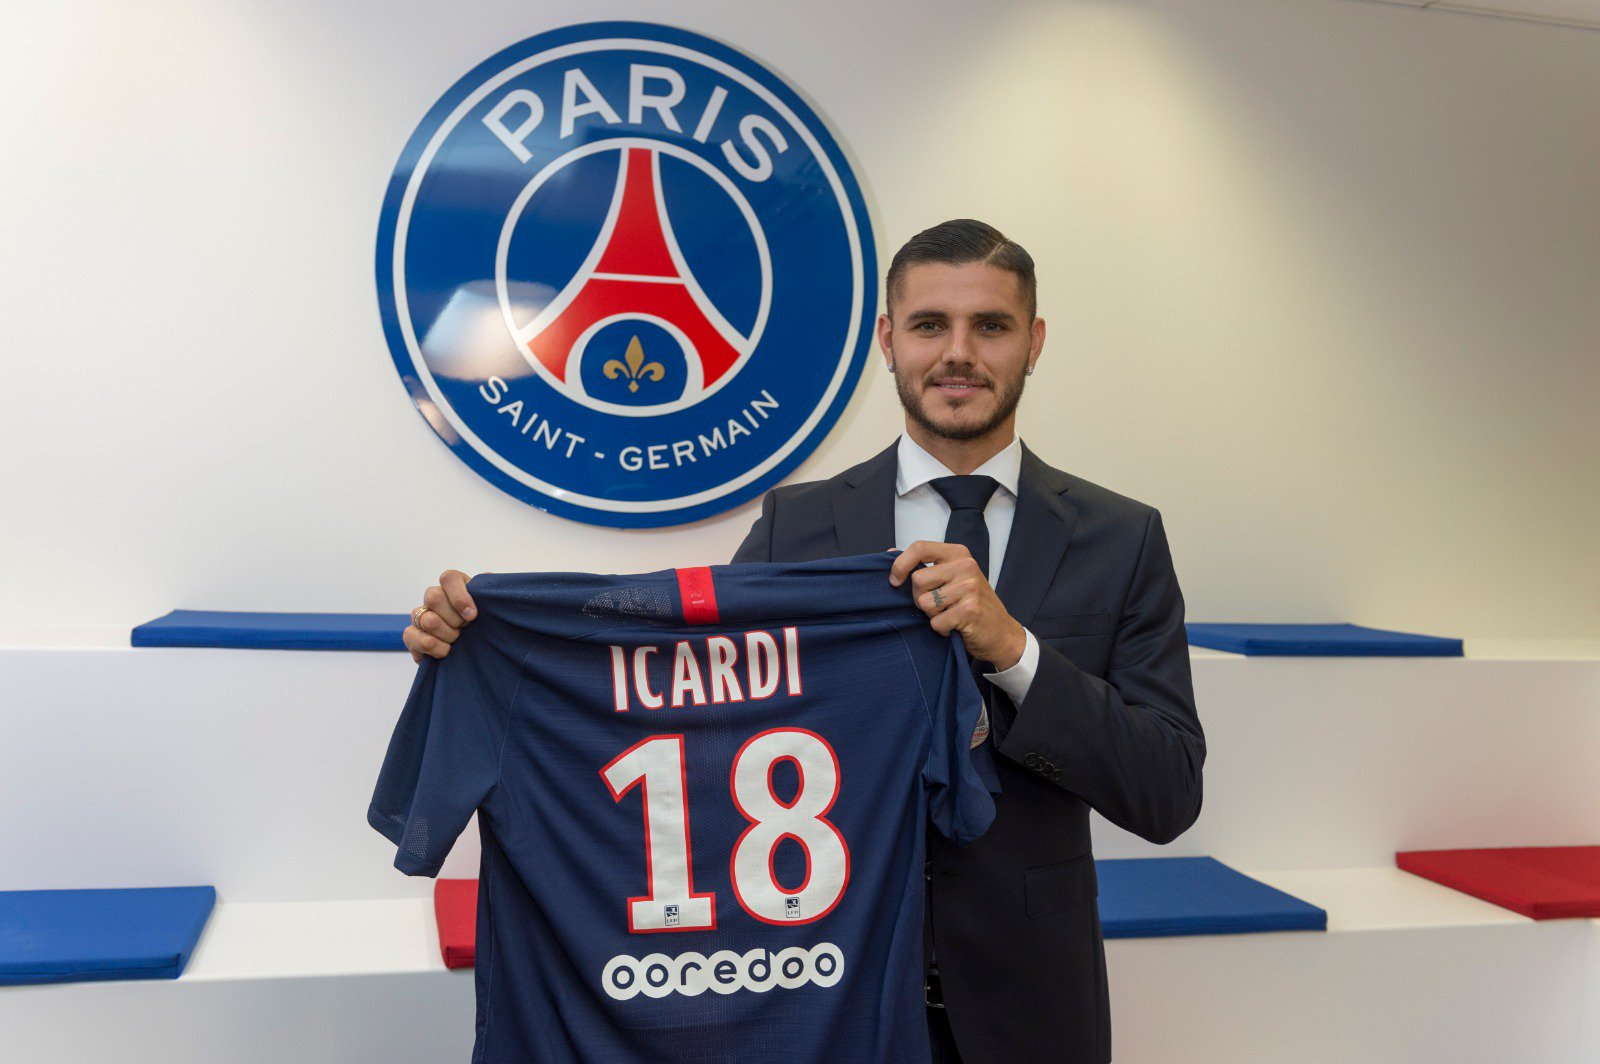 Mauro Icardi joins Paris Saint-Germain on loan